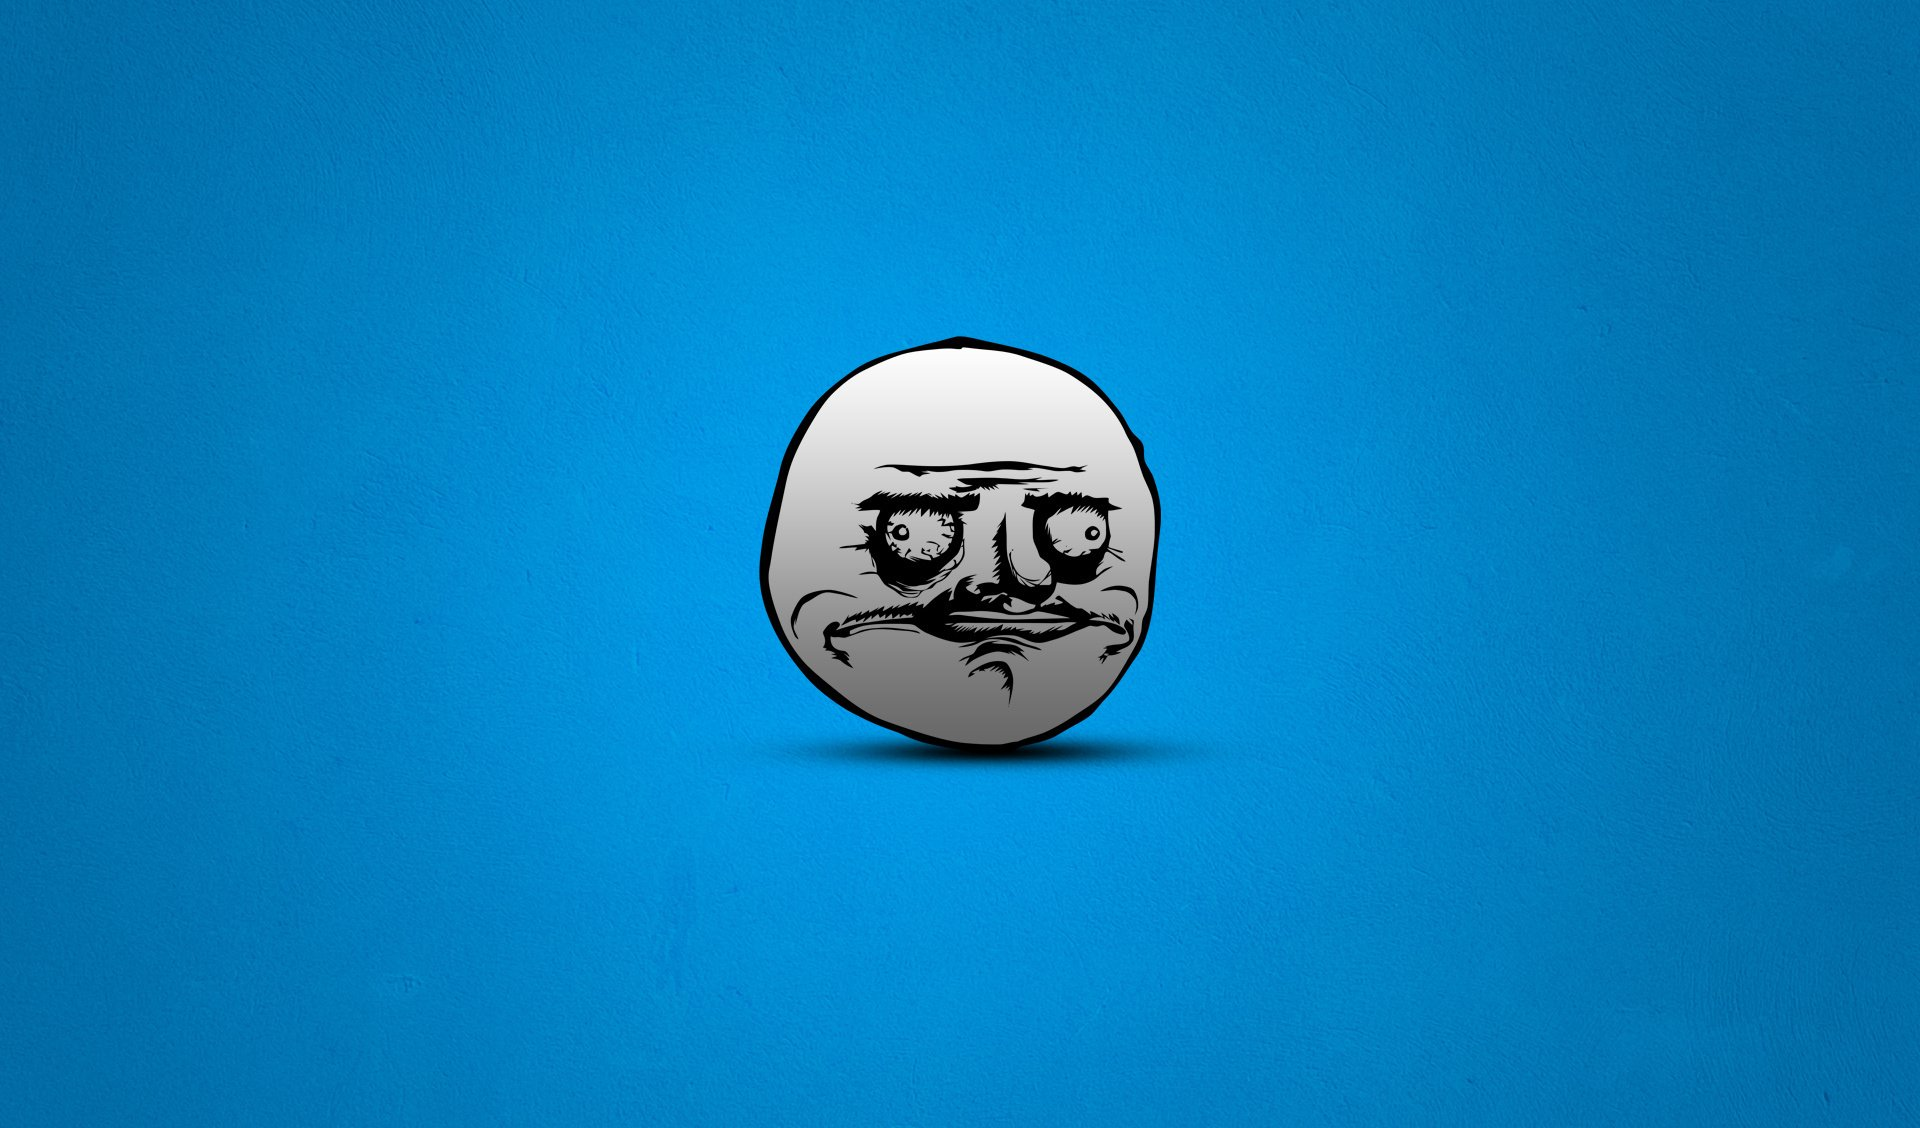 4 troll face hd wallpapers background images wallpaper abyss hd wallpaper background image id302322 voltagebd Choice Image